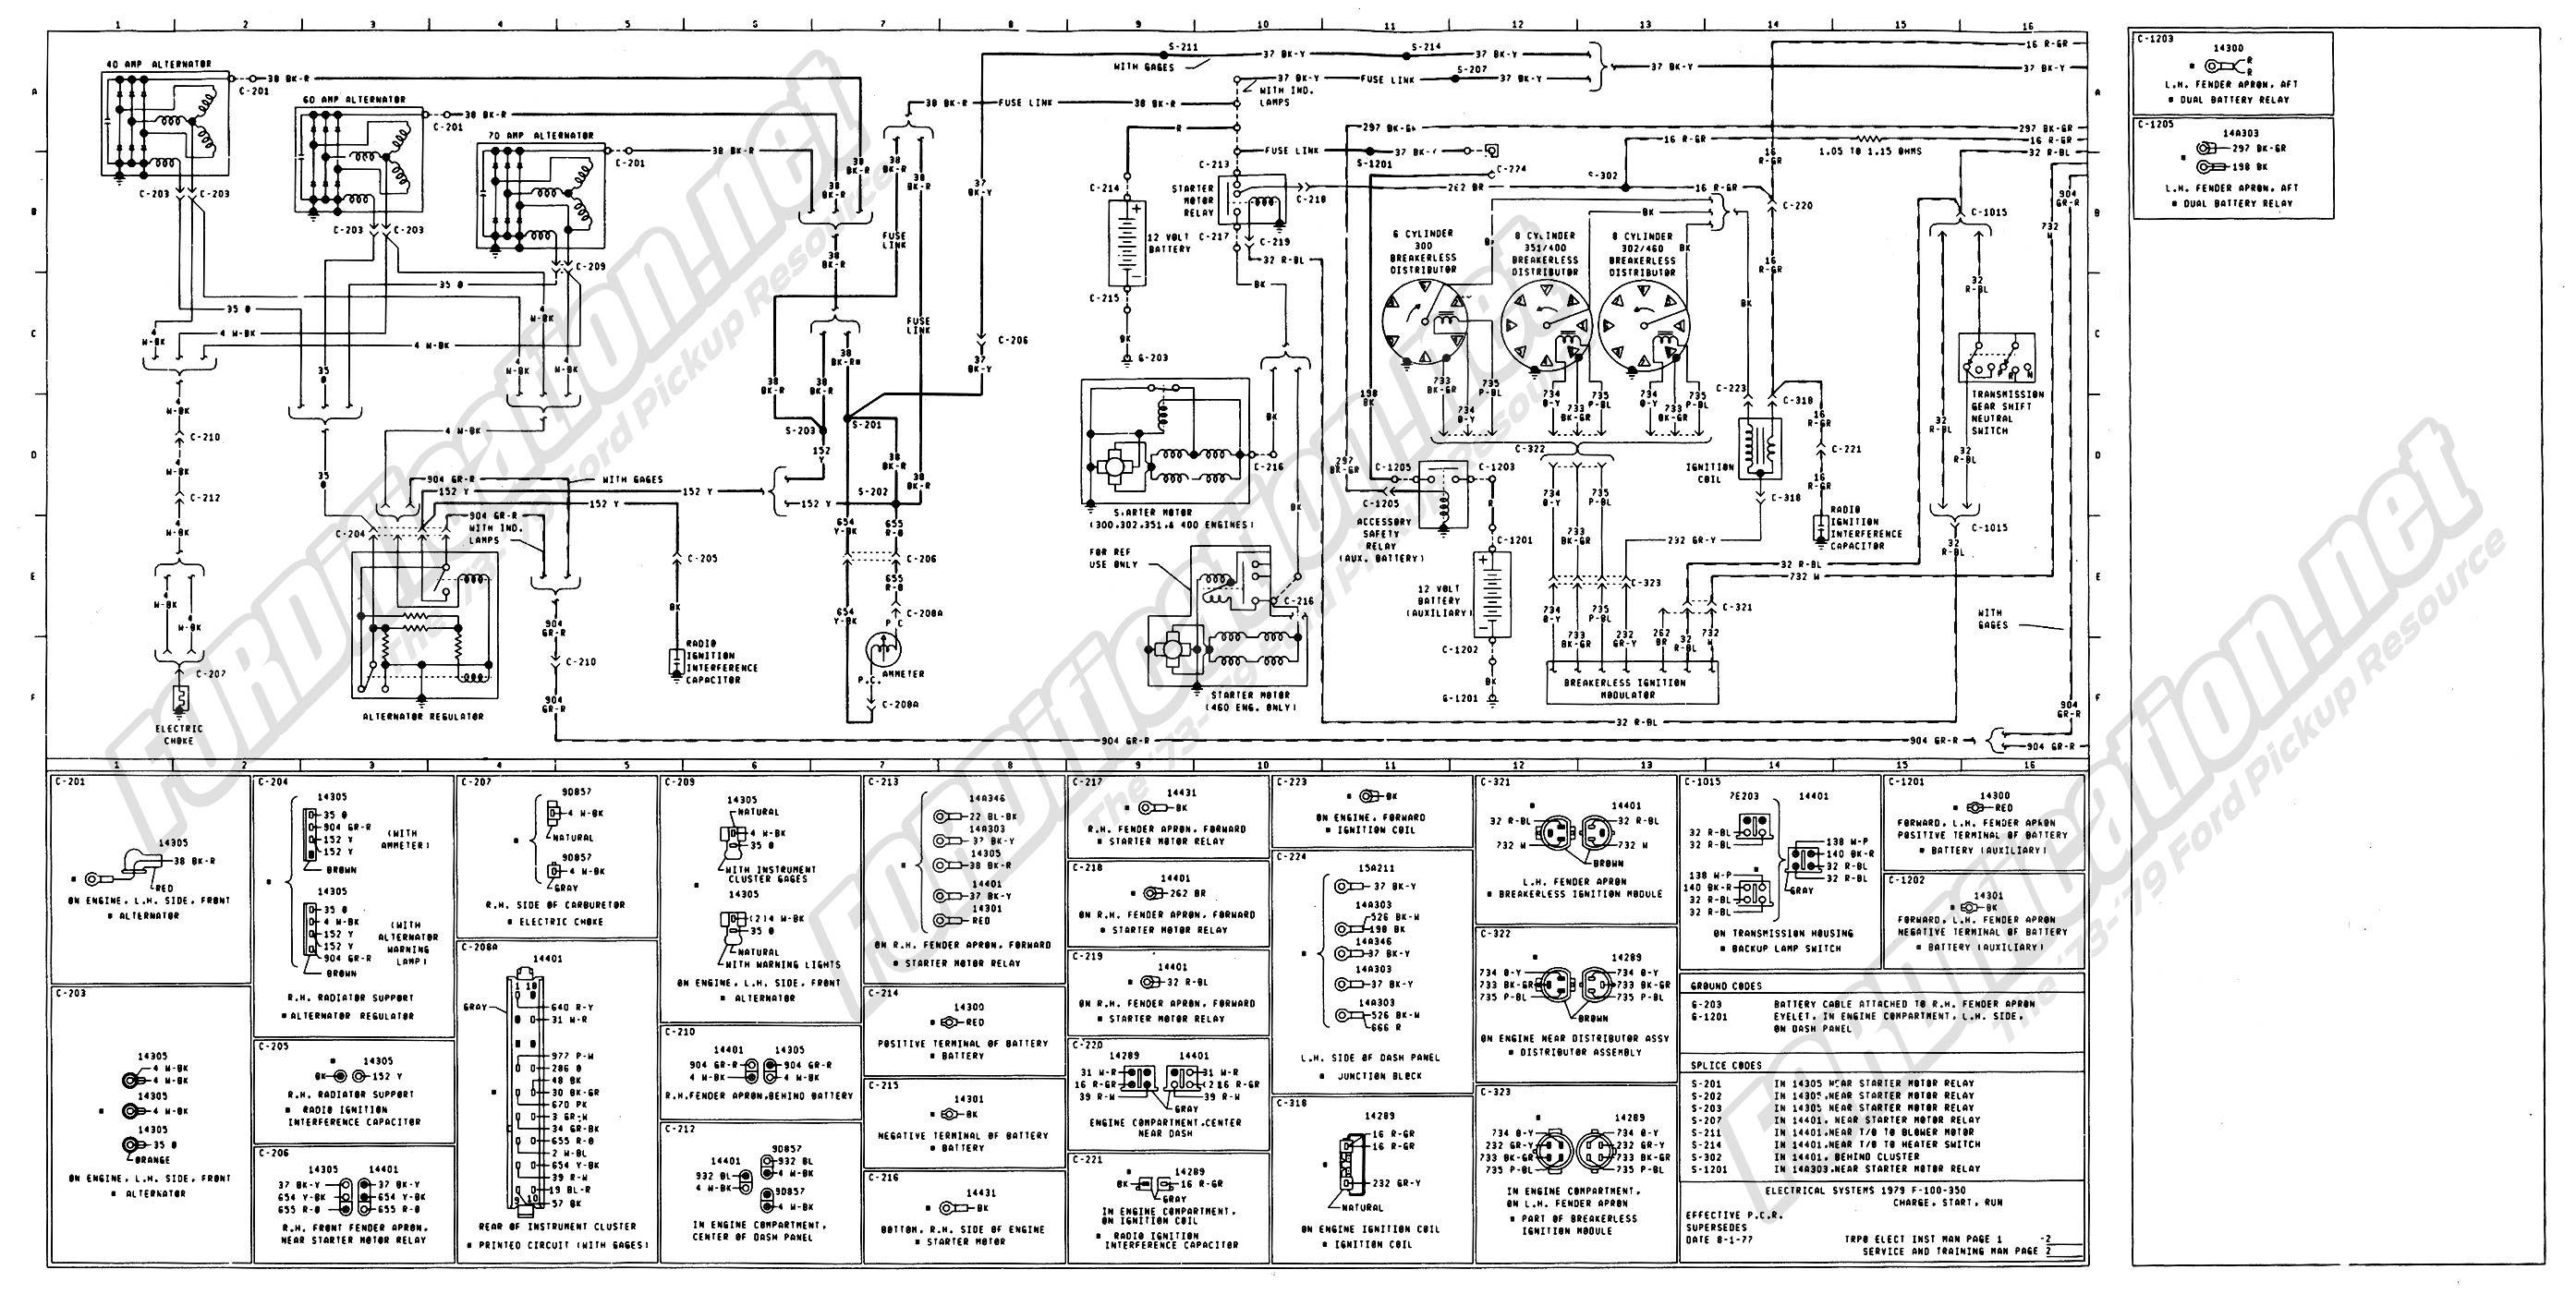 1979 Ford Factory Radio Wiring Content Resource Of Diagram Fusion Stereo 1973 Truck Diagrams Schematics Fordification Net Rh 2004 Wire Colors 98 Explorer